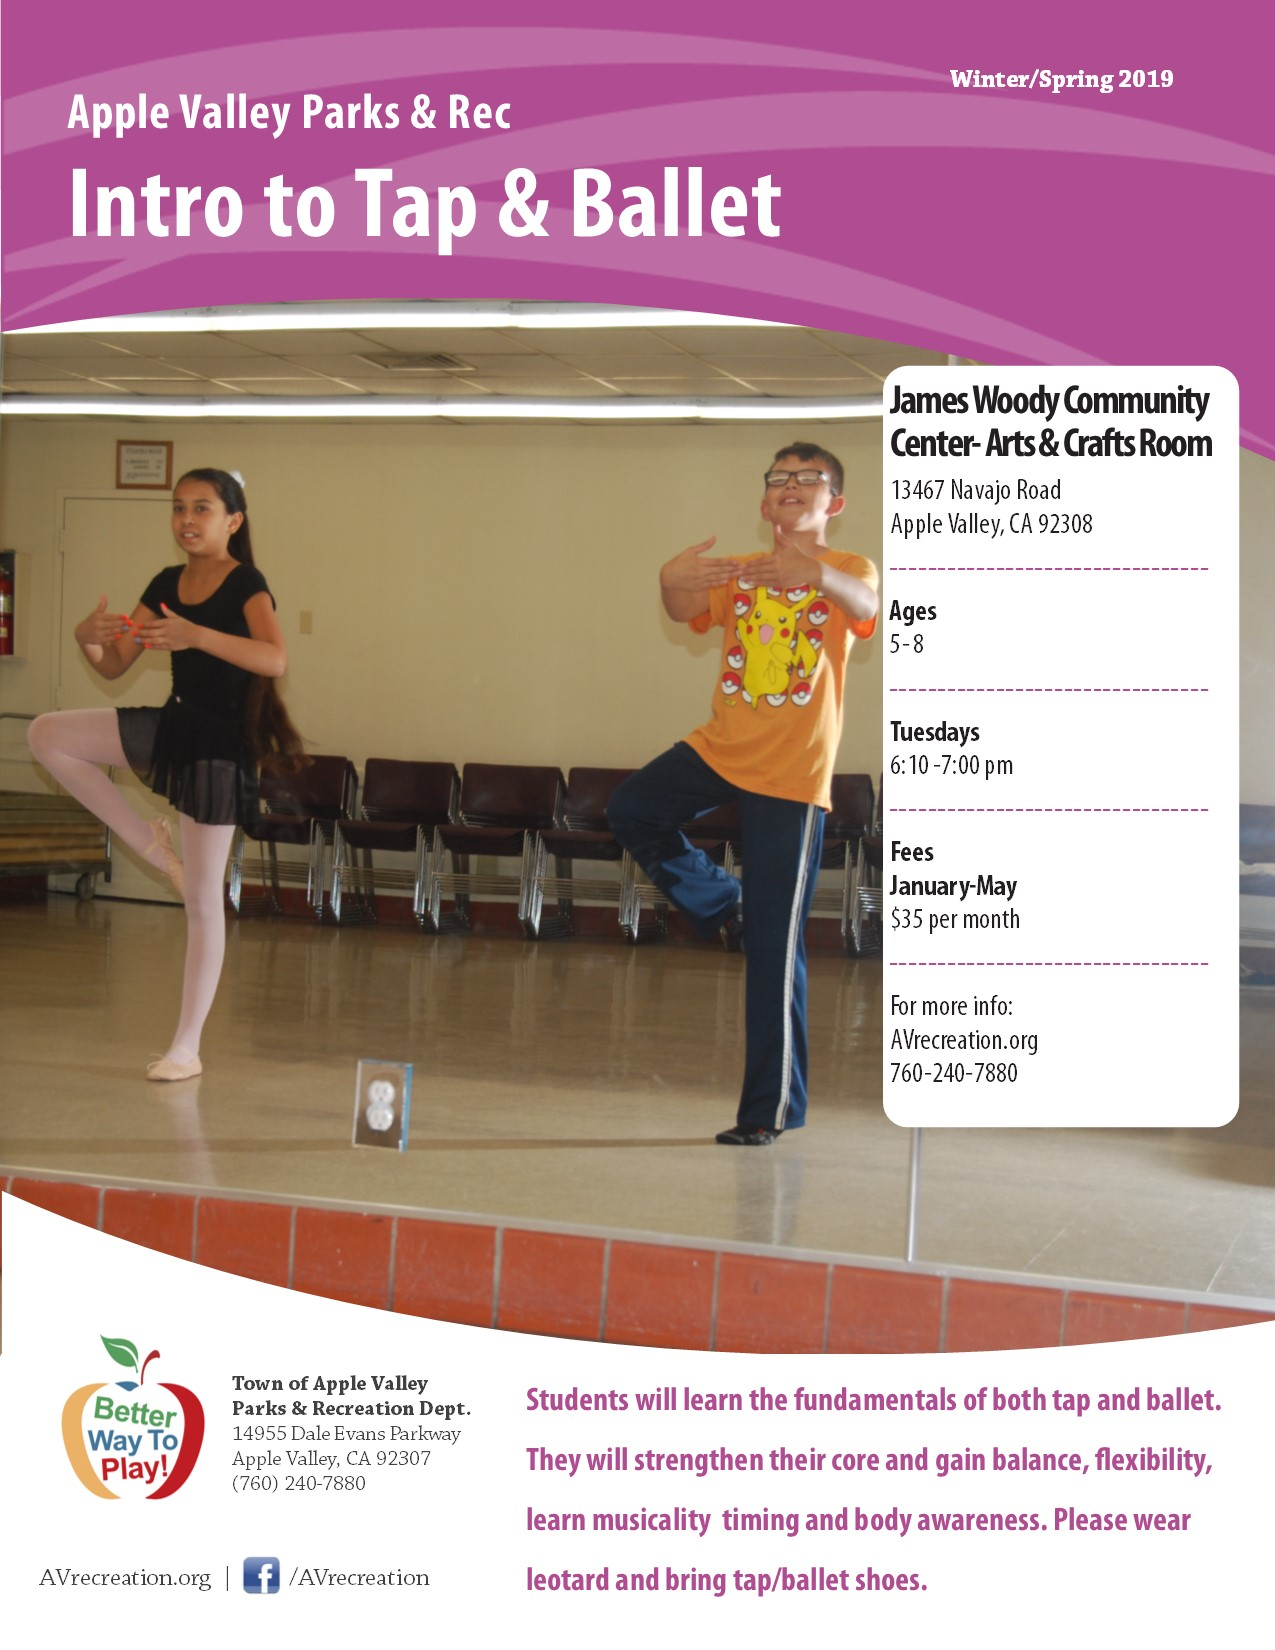 Intro to Tap & Ballet